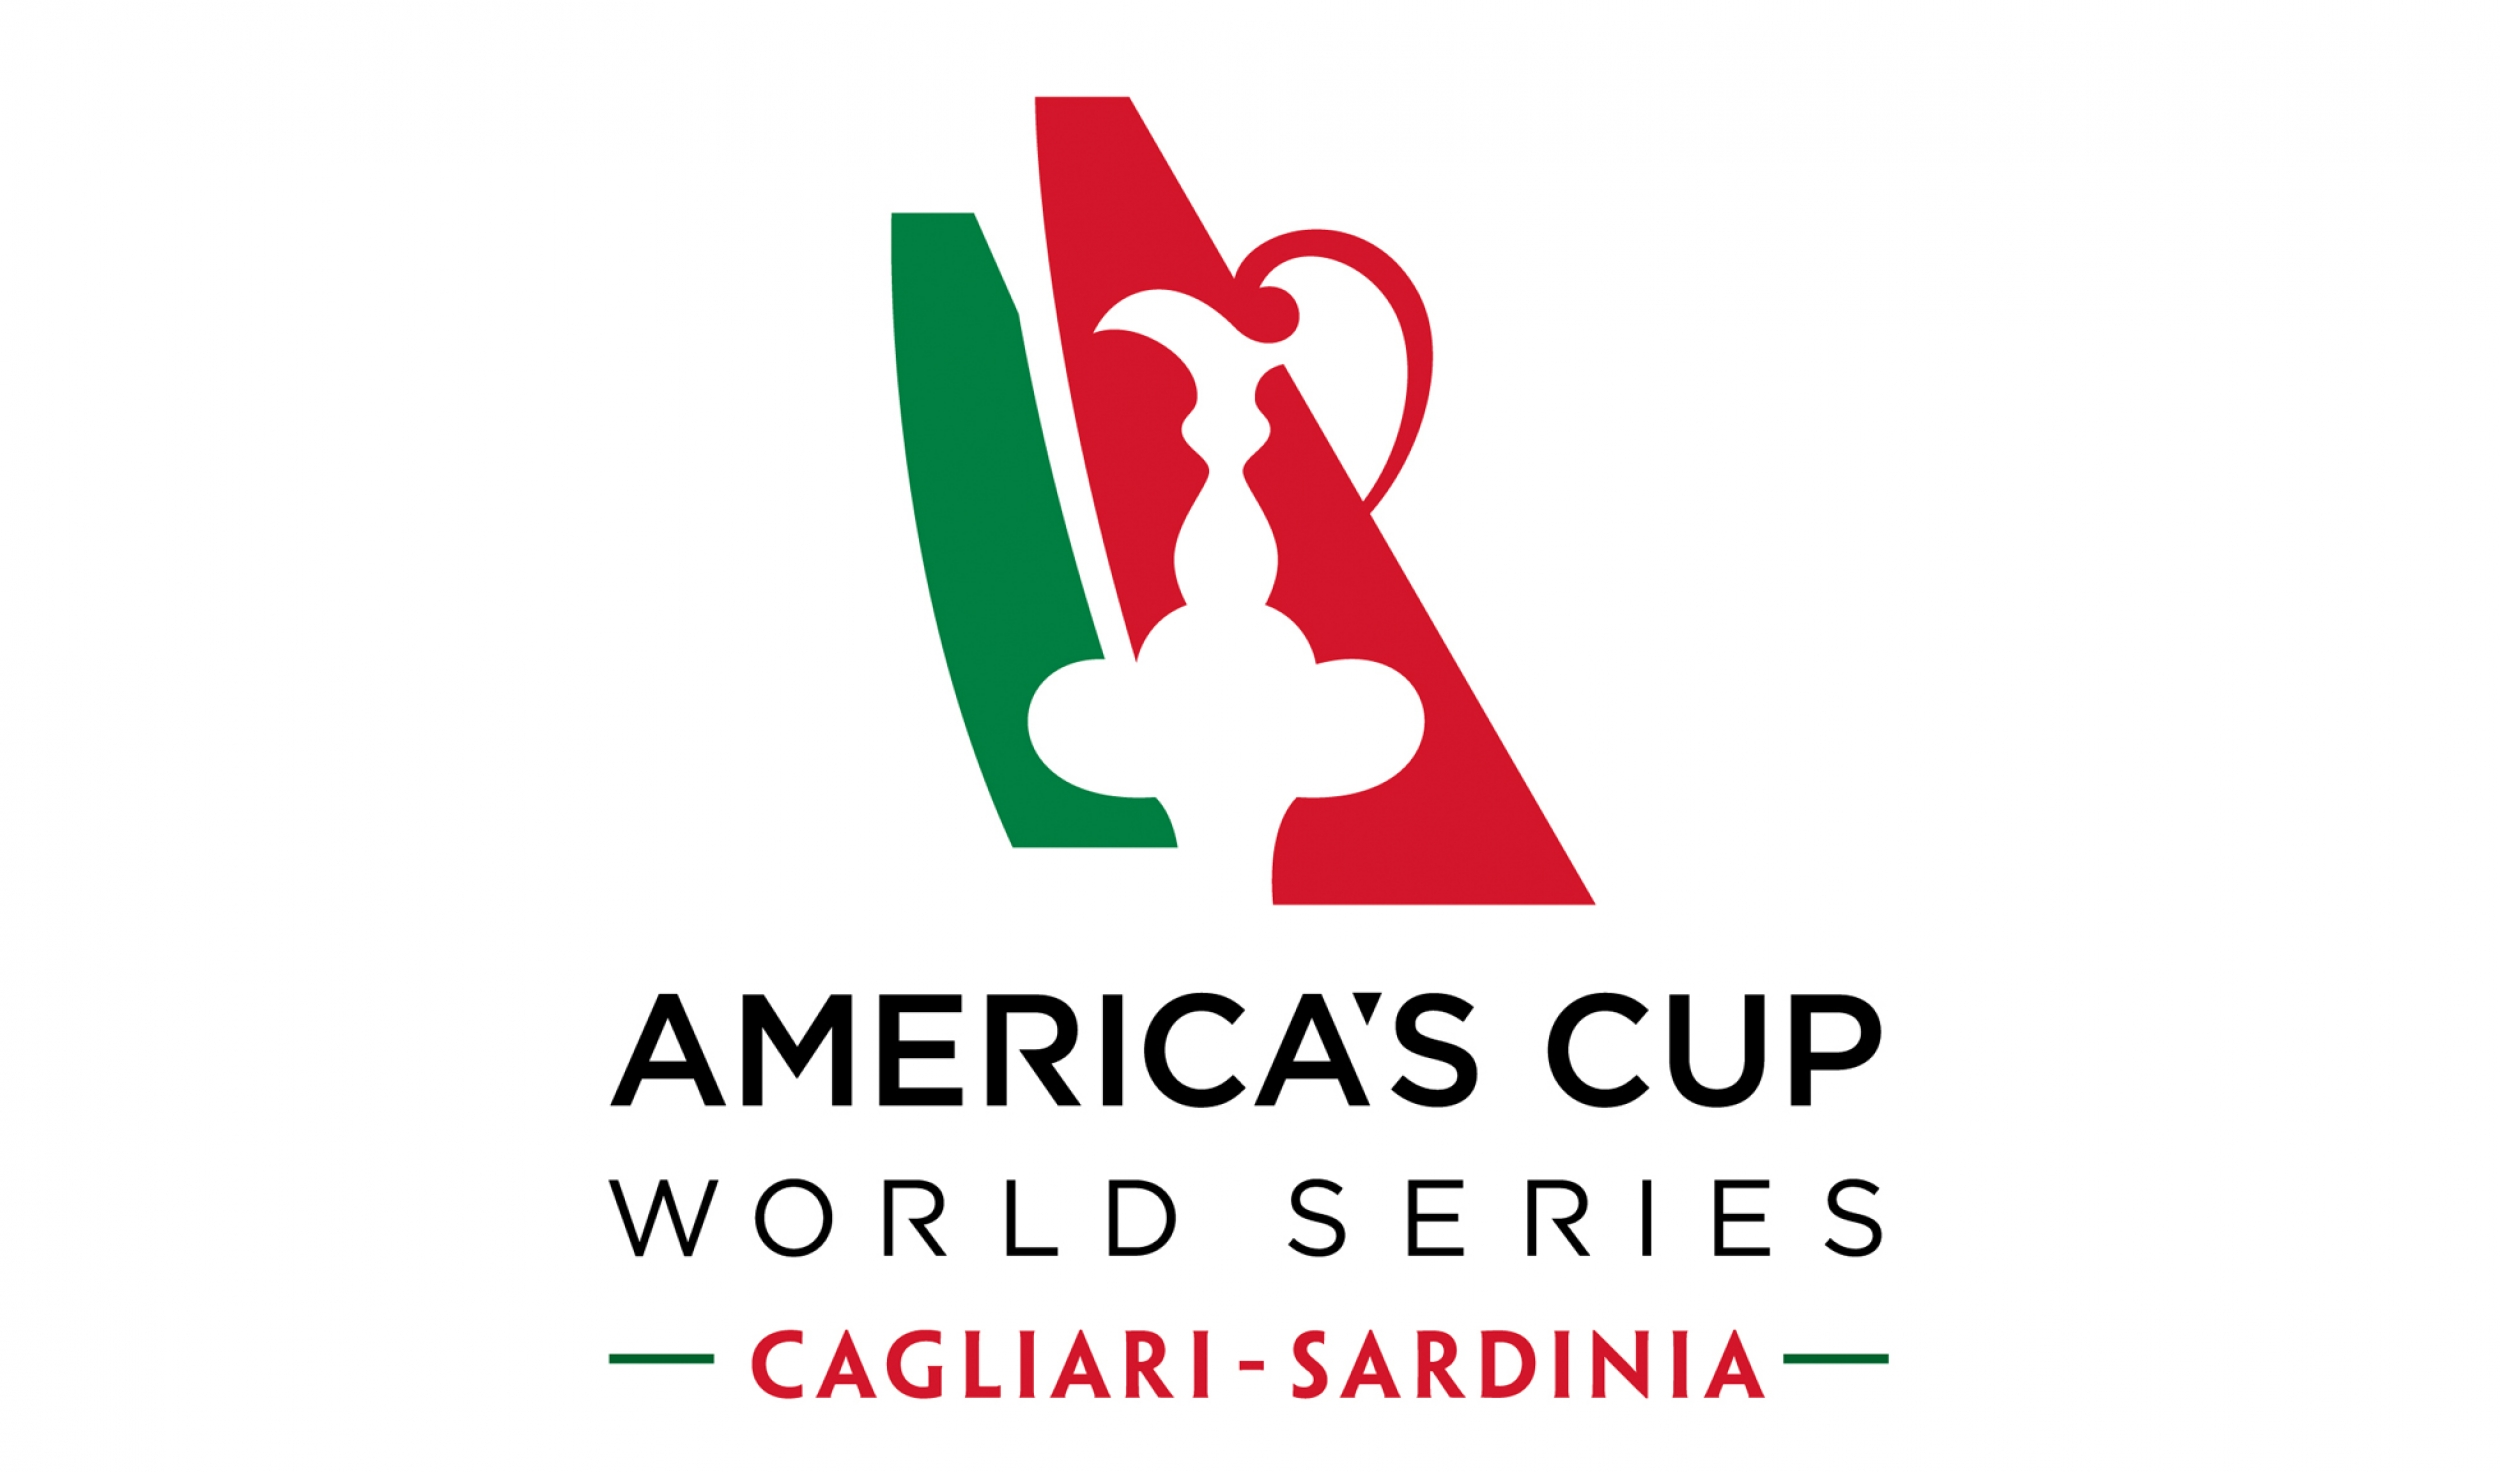 America's Cup World Series 2015 – 2016